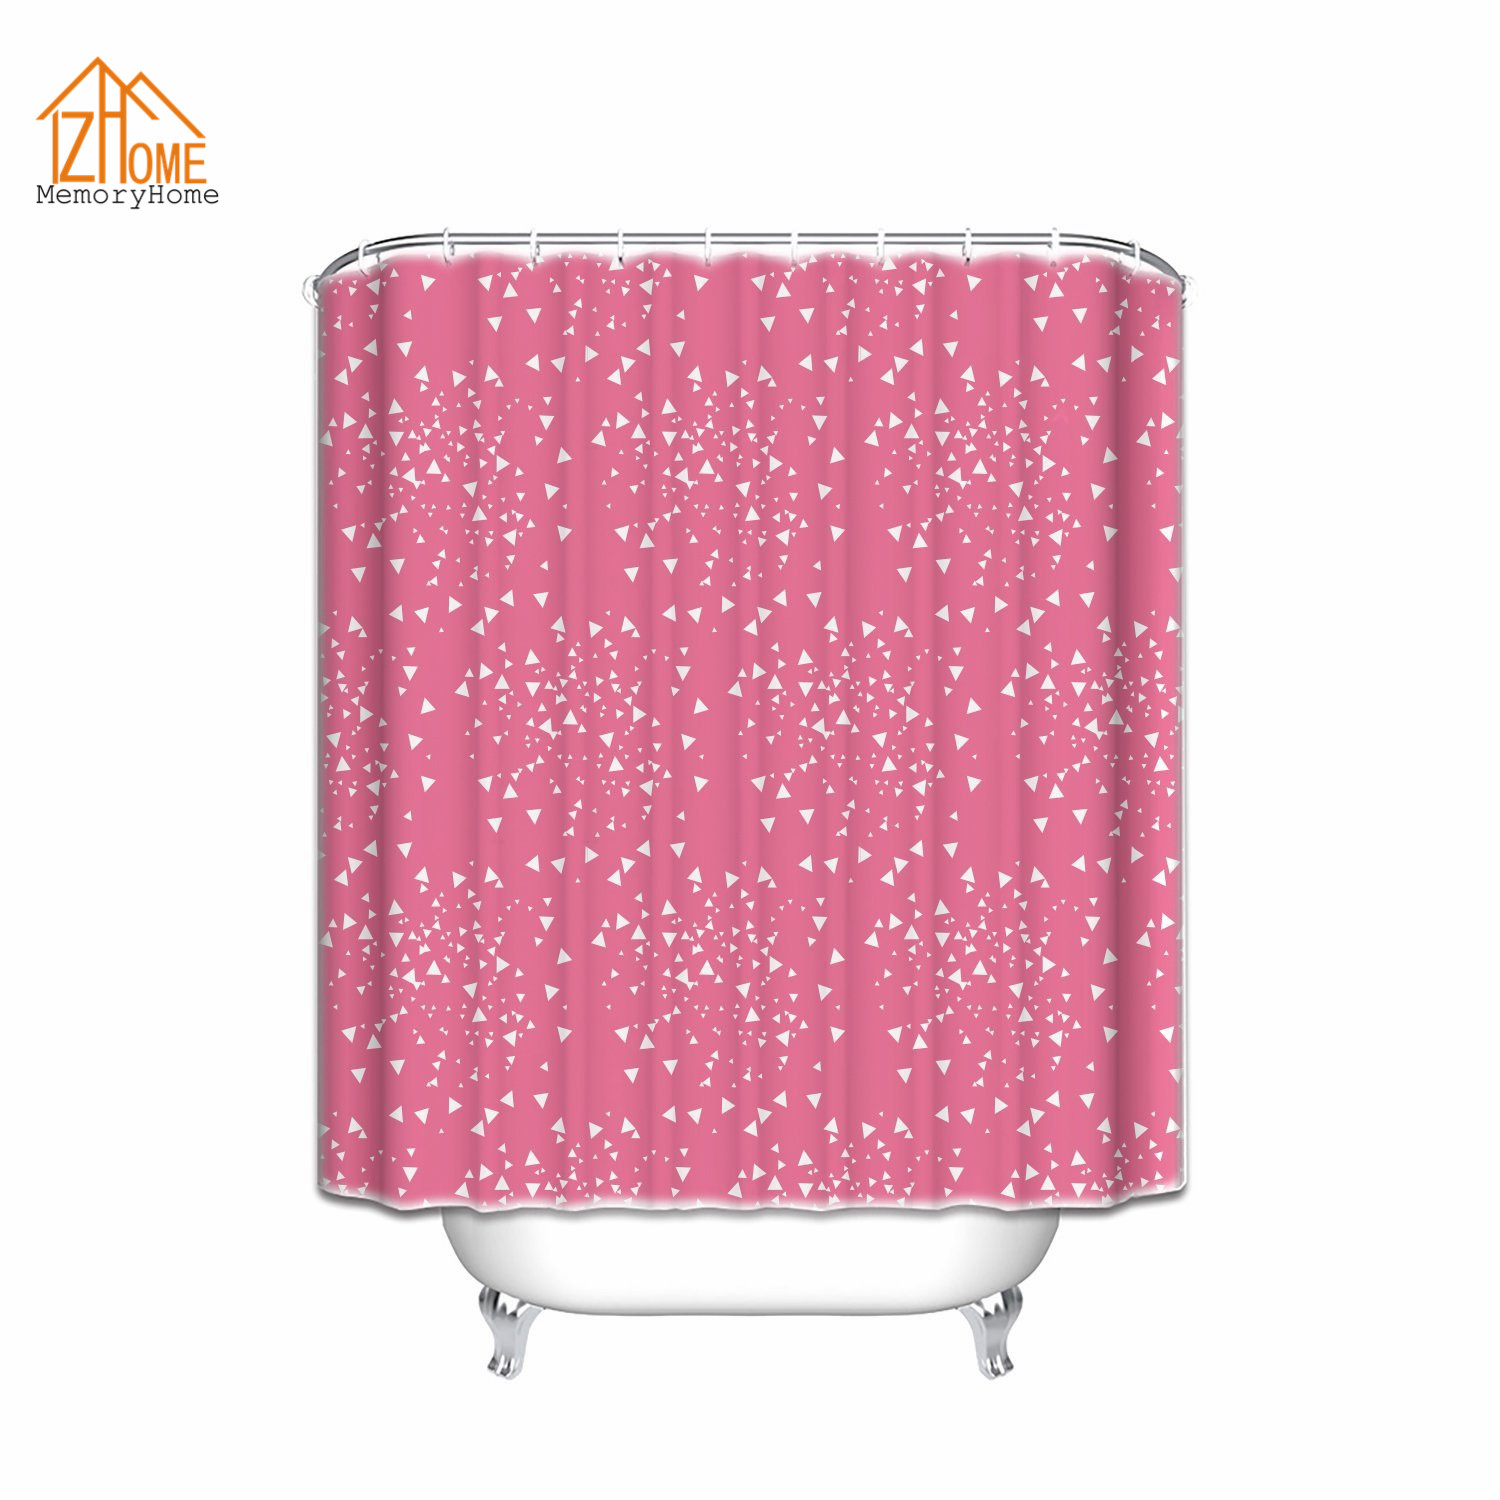 Pink and white bathroom accessories - Memory Home Decor Shower Curtain Set New Design Geometrical Modern Art Pattern Bathroom Accessories Pink And